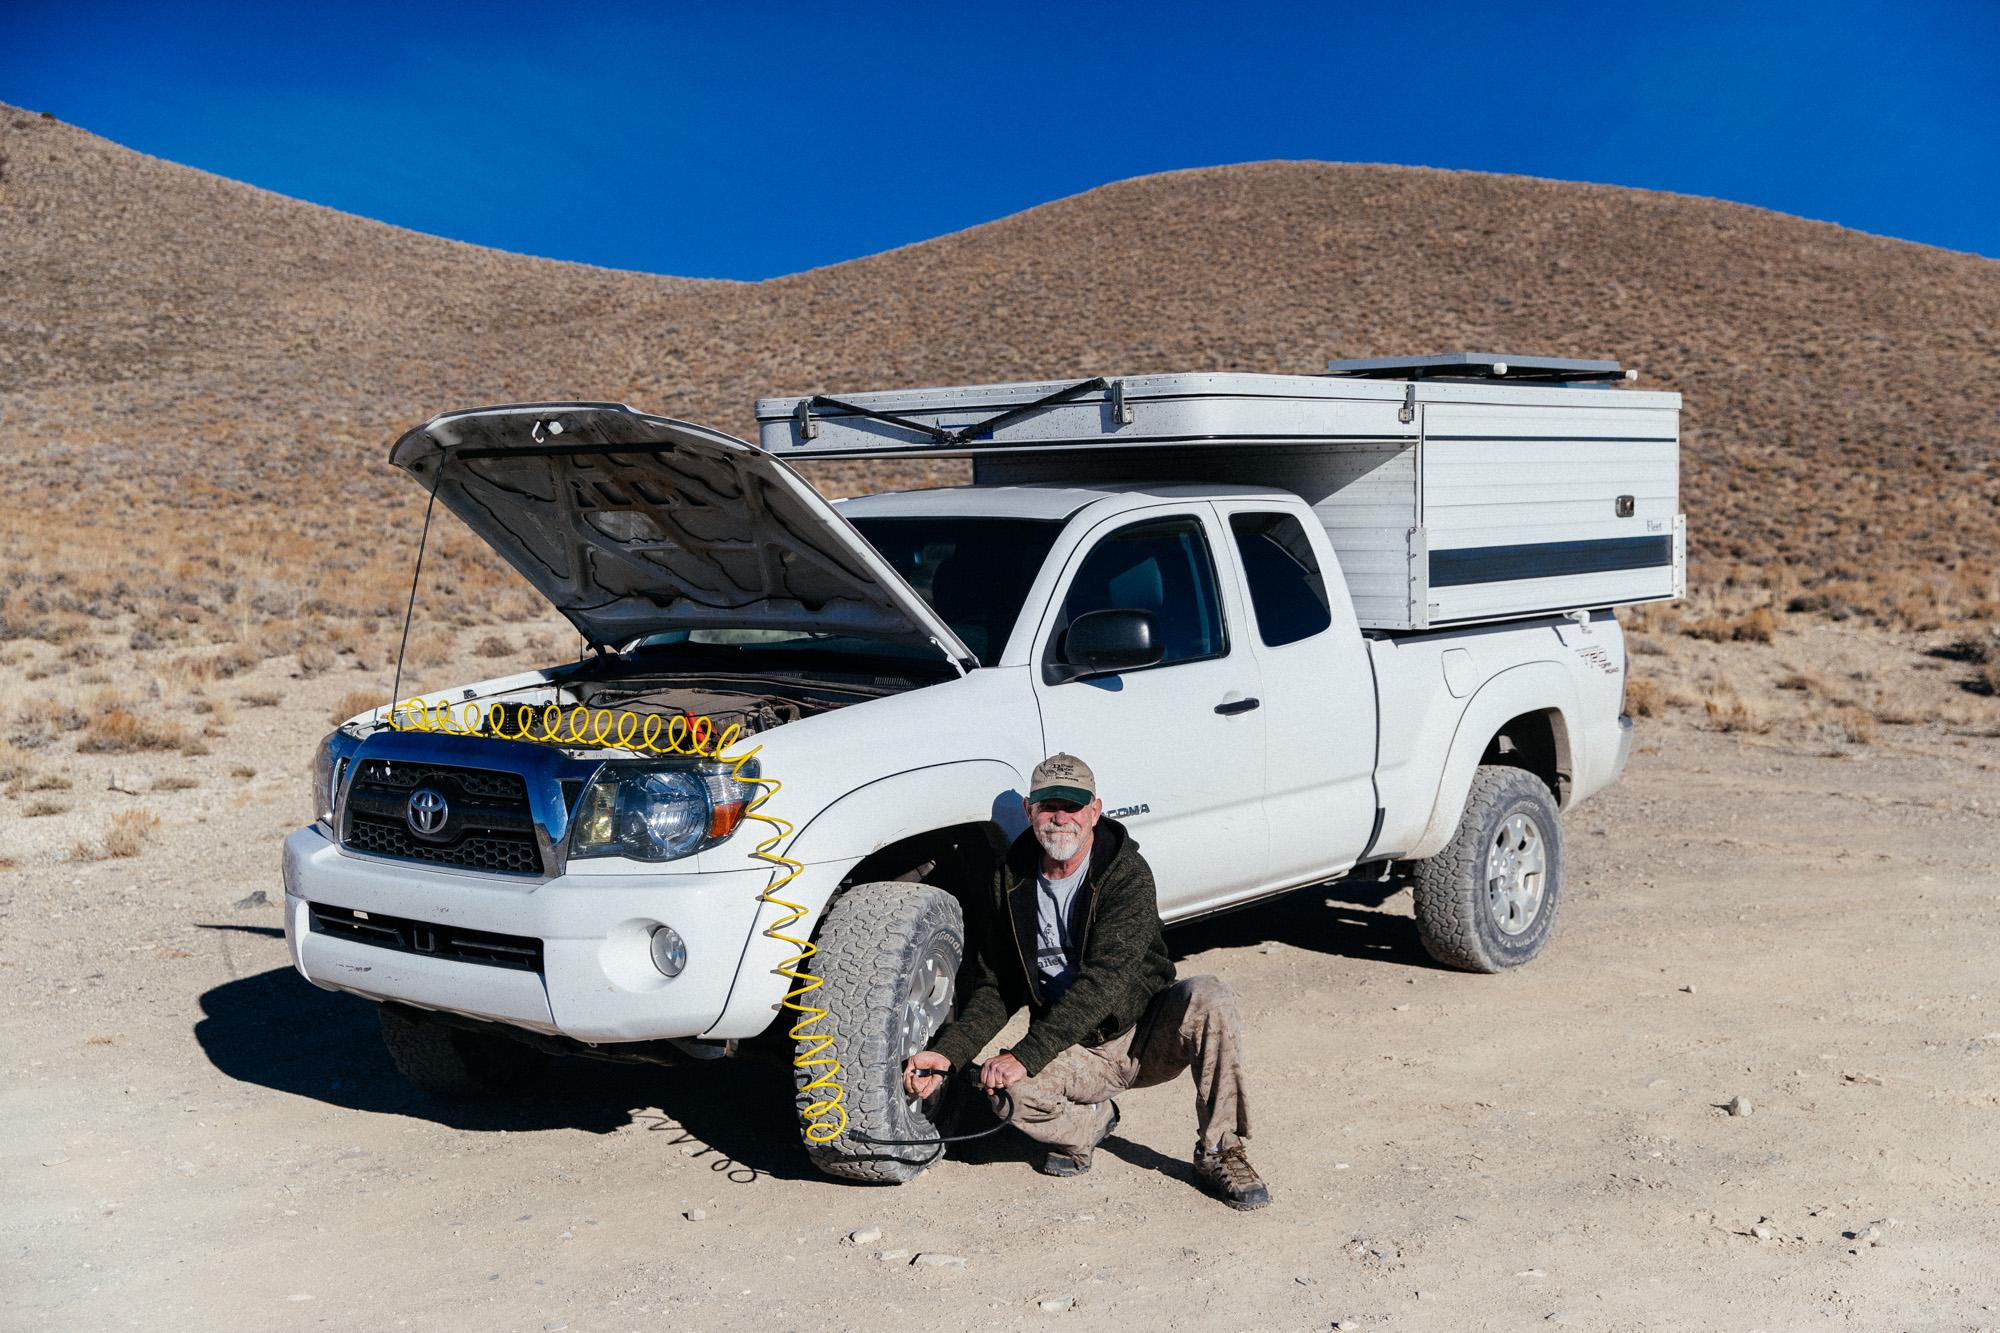 We met Kelly, who was airing up his Tacoma after camping at Saline Warm Springs.